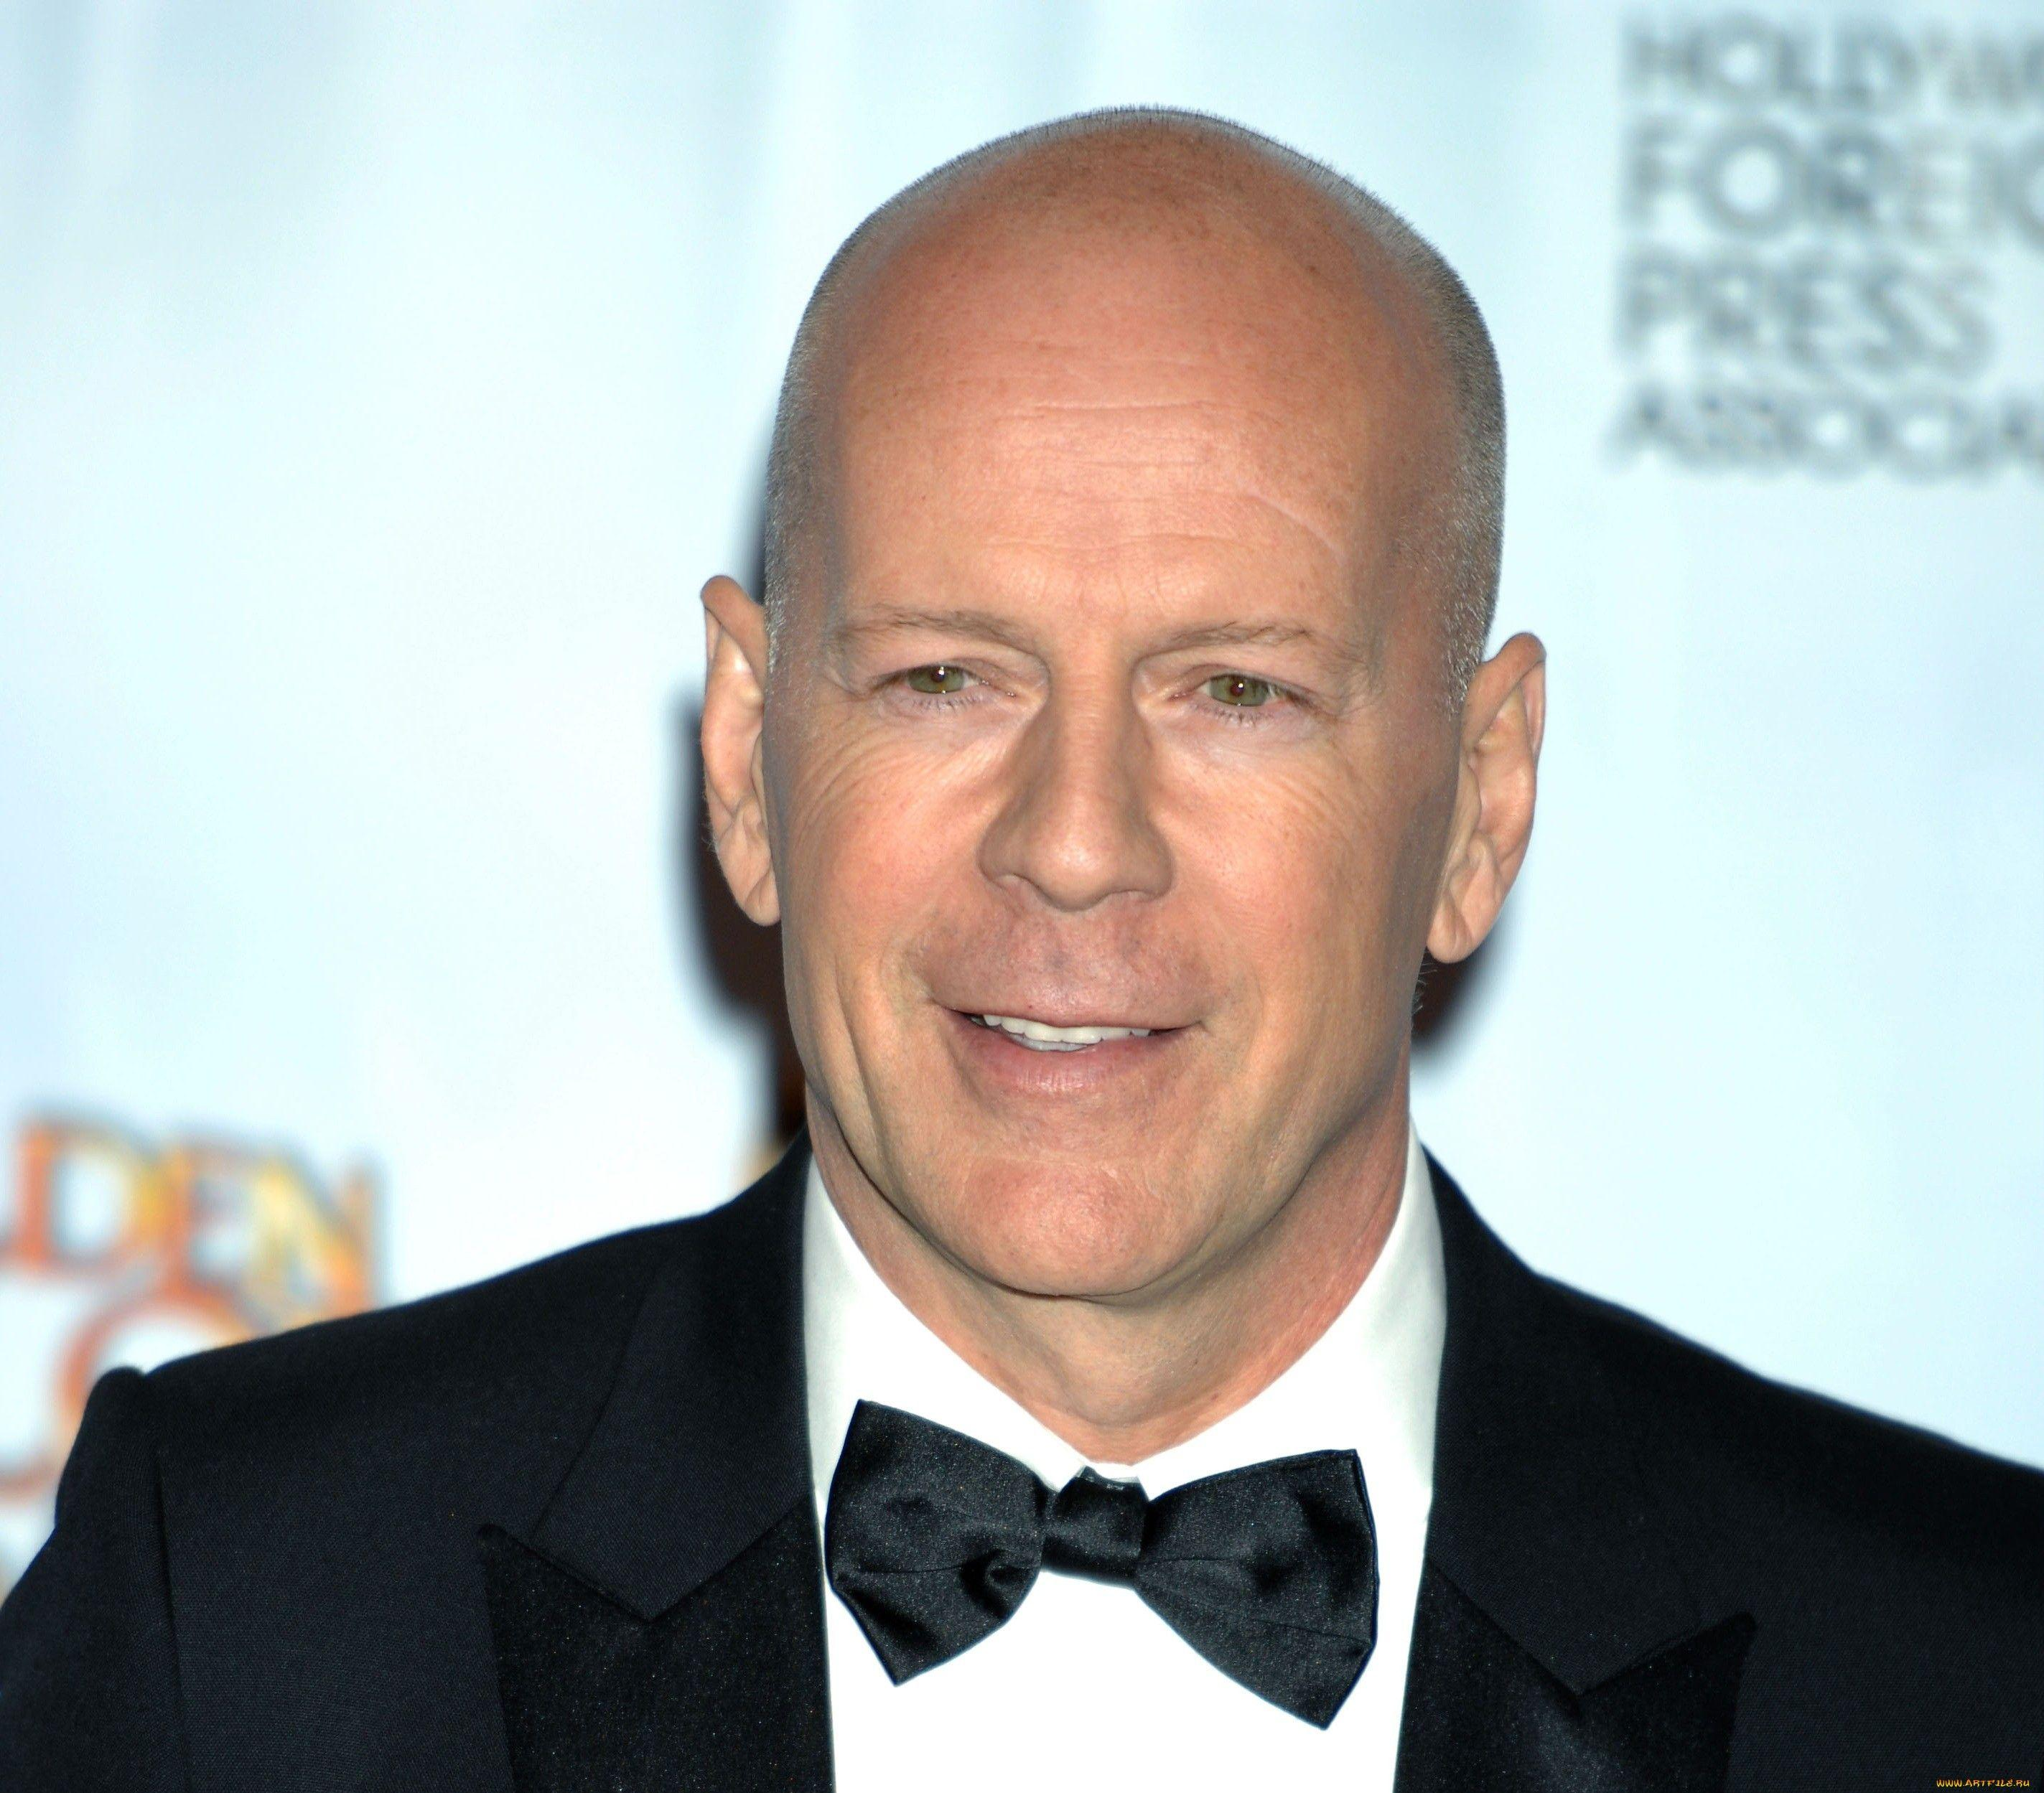 102 Bruce Willis HD Wallpapers | Backgrounds - Wallpaper Abyss